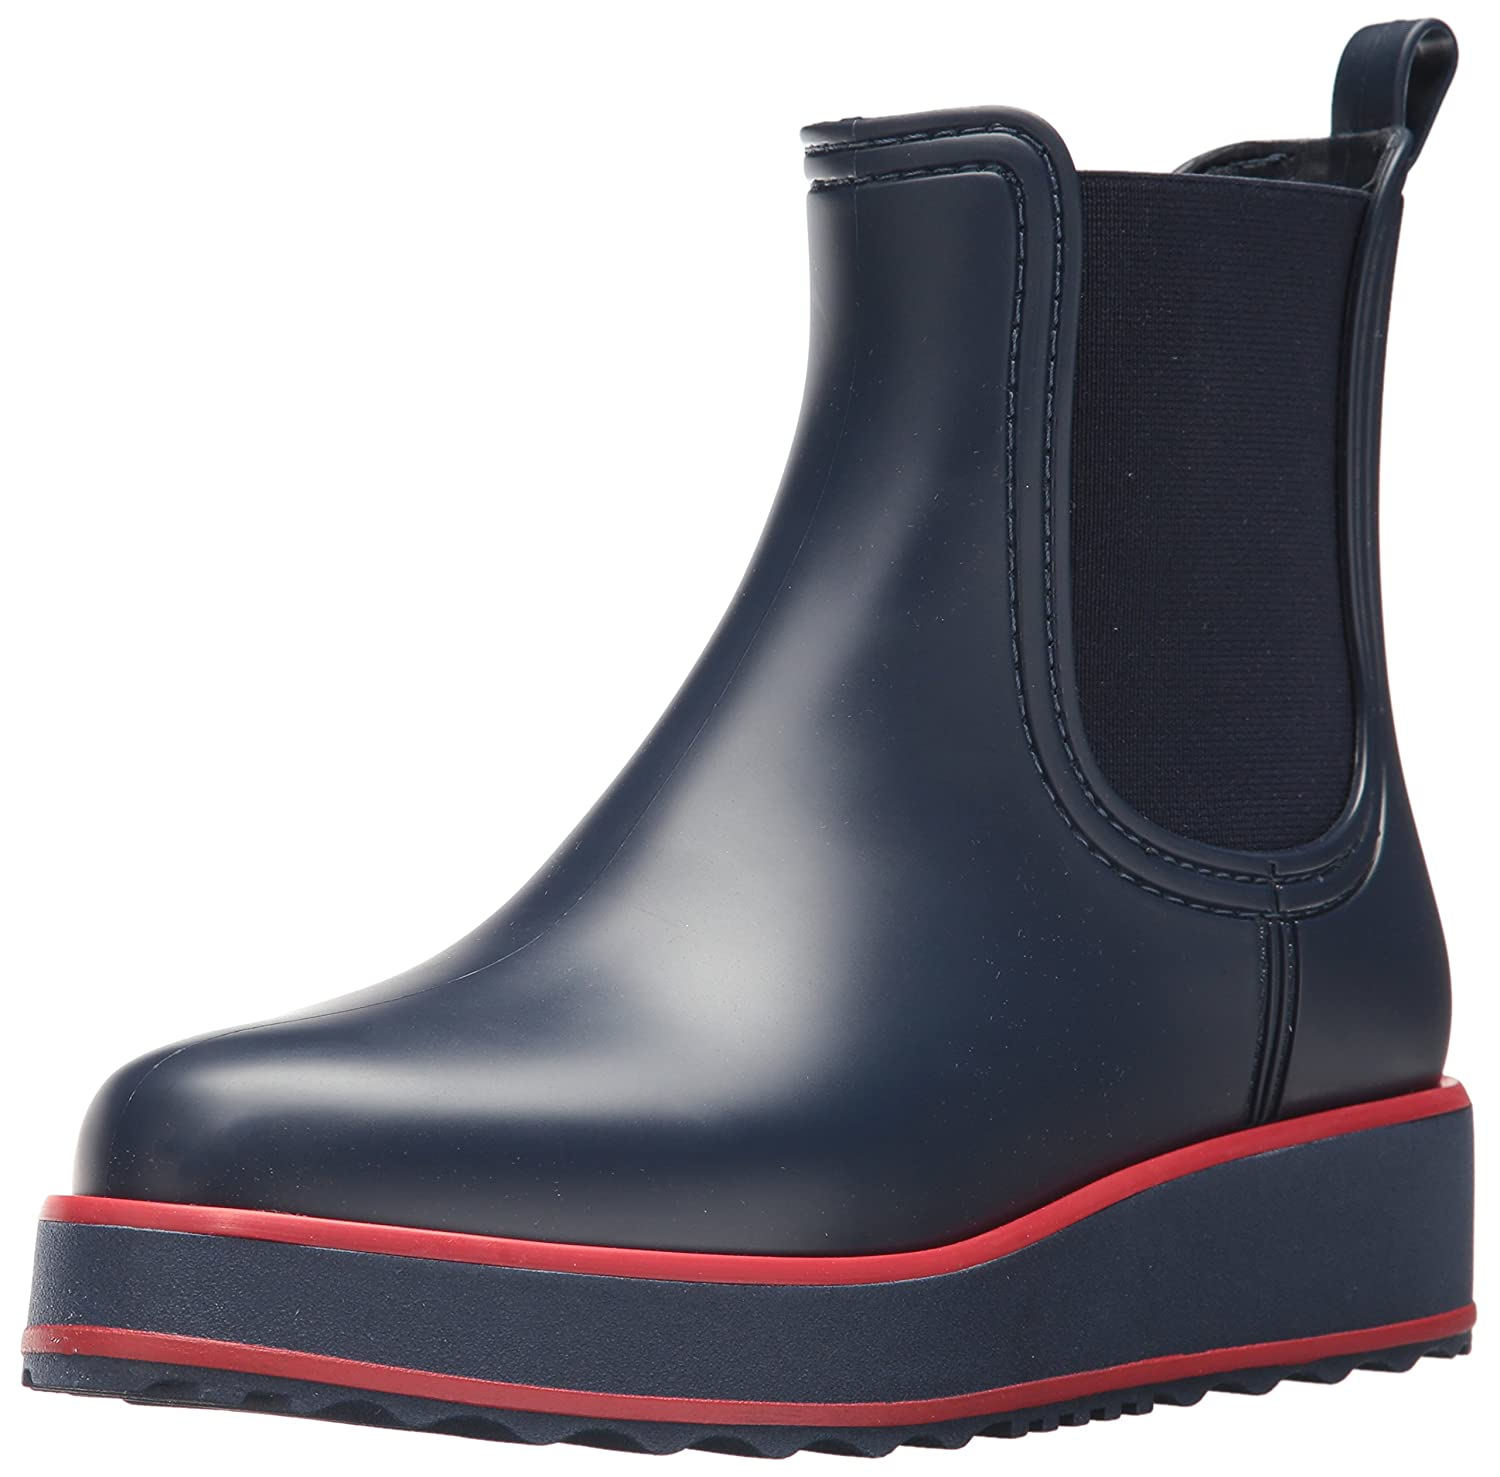 Bernardo Women's Willa Rain Boot B06XYXZ18S 11 B(M) US|Navy Rubber